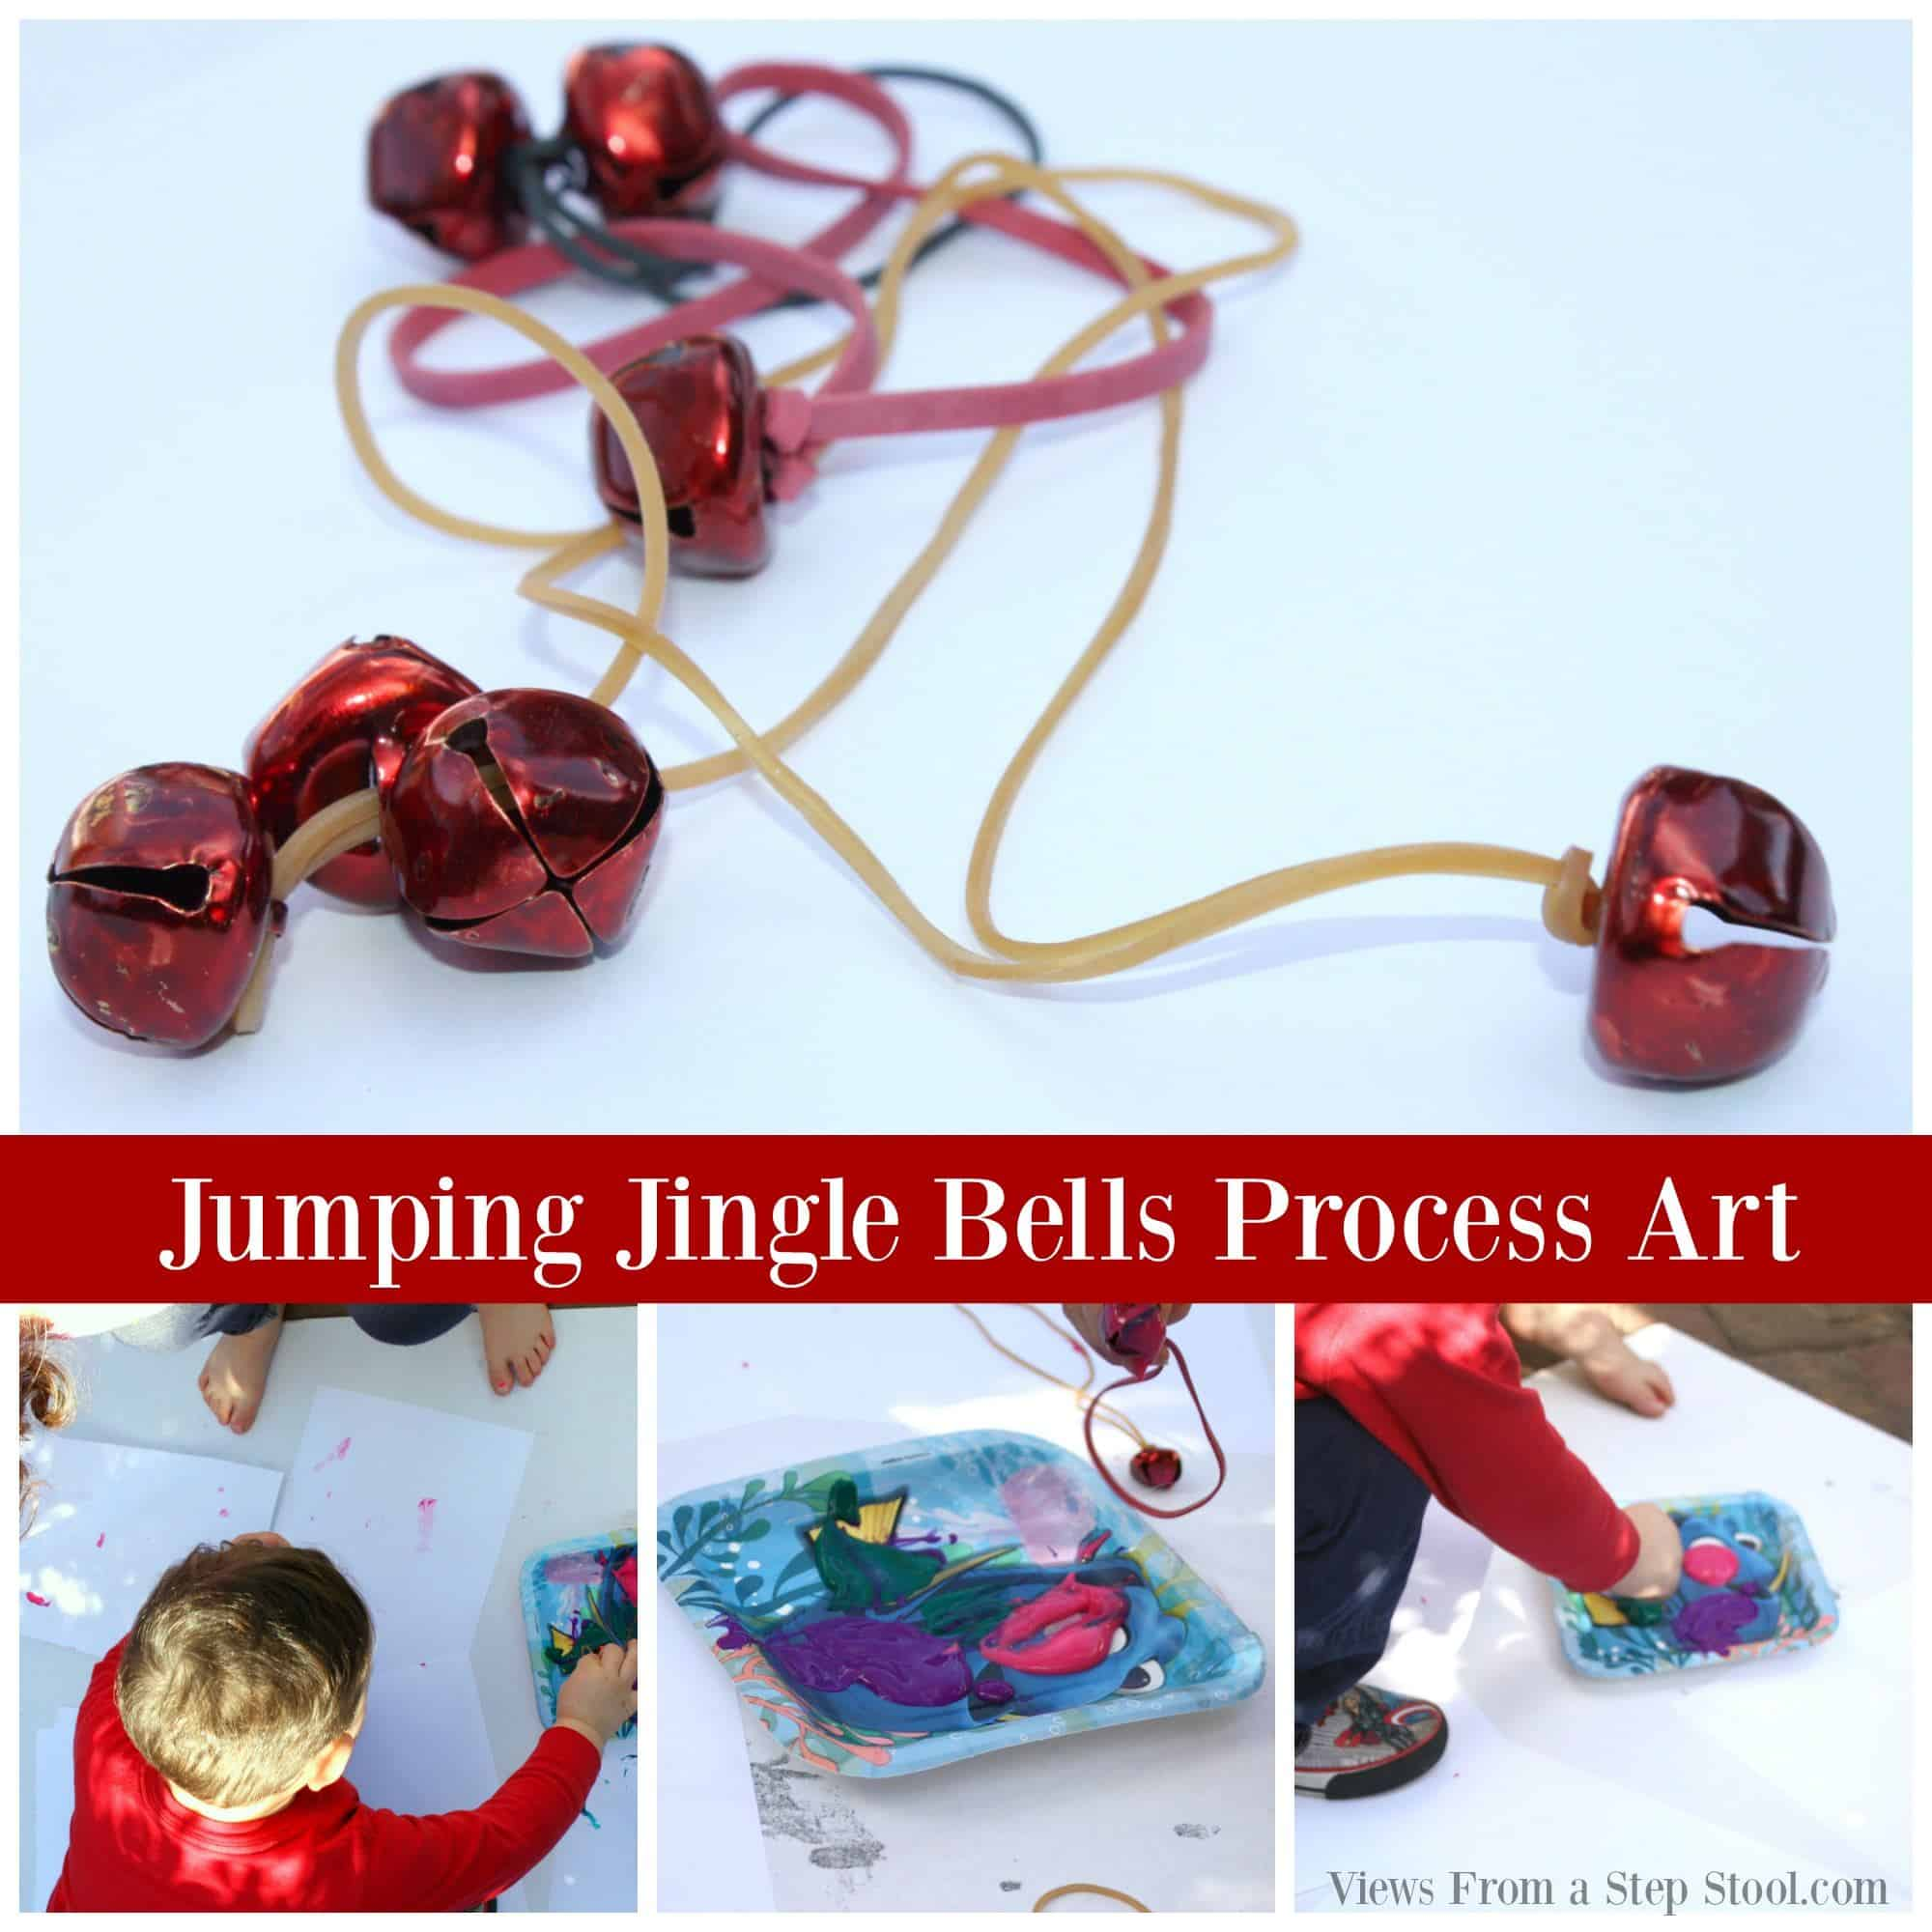 This jingle bells process art activity is a great way to celebrate the holidays while engaging all of the senses through learning and play!